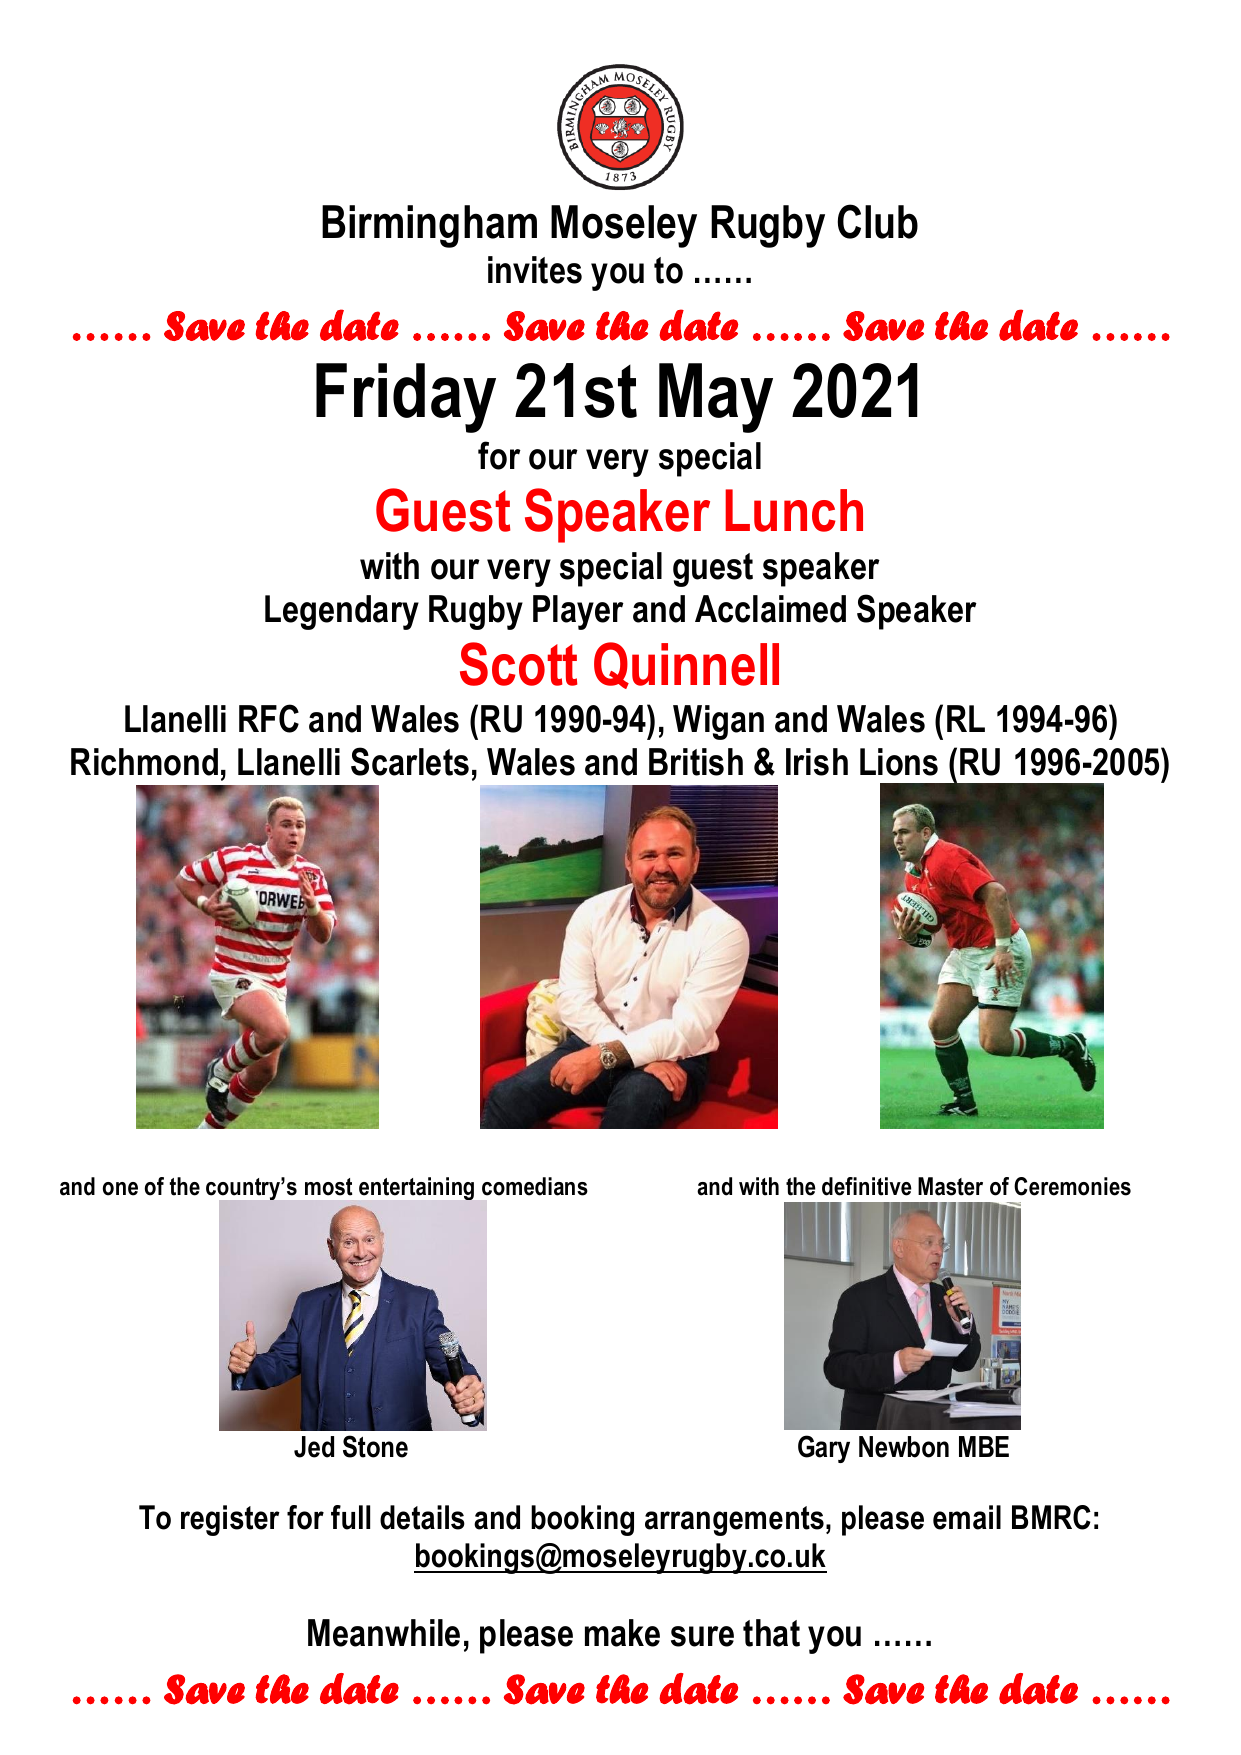 Scott Quinnell Lunch